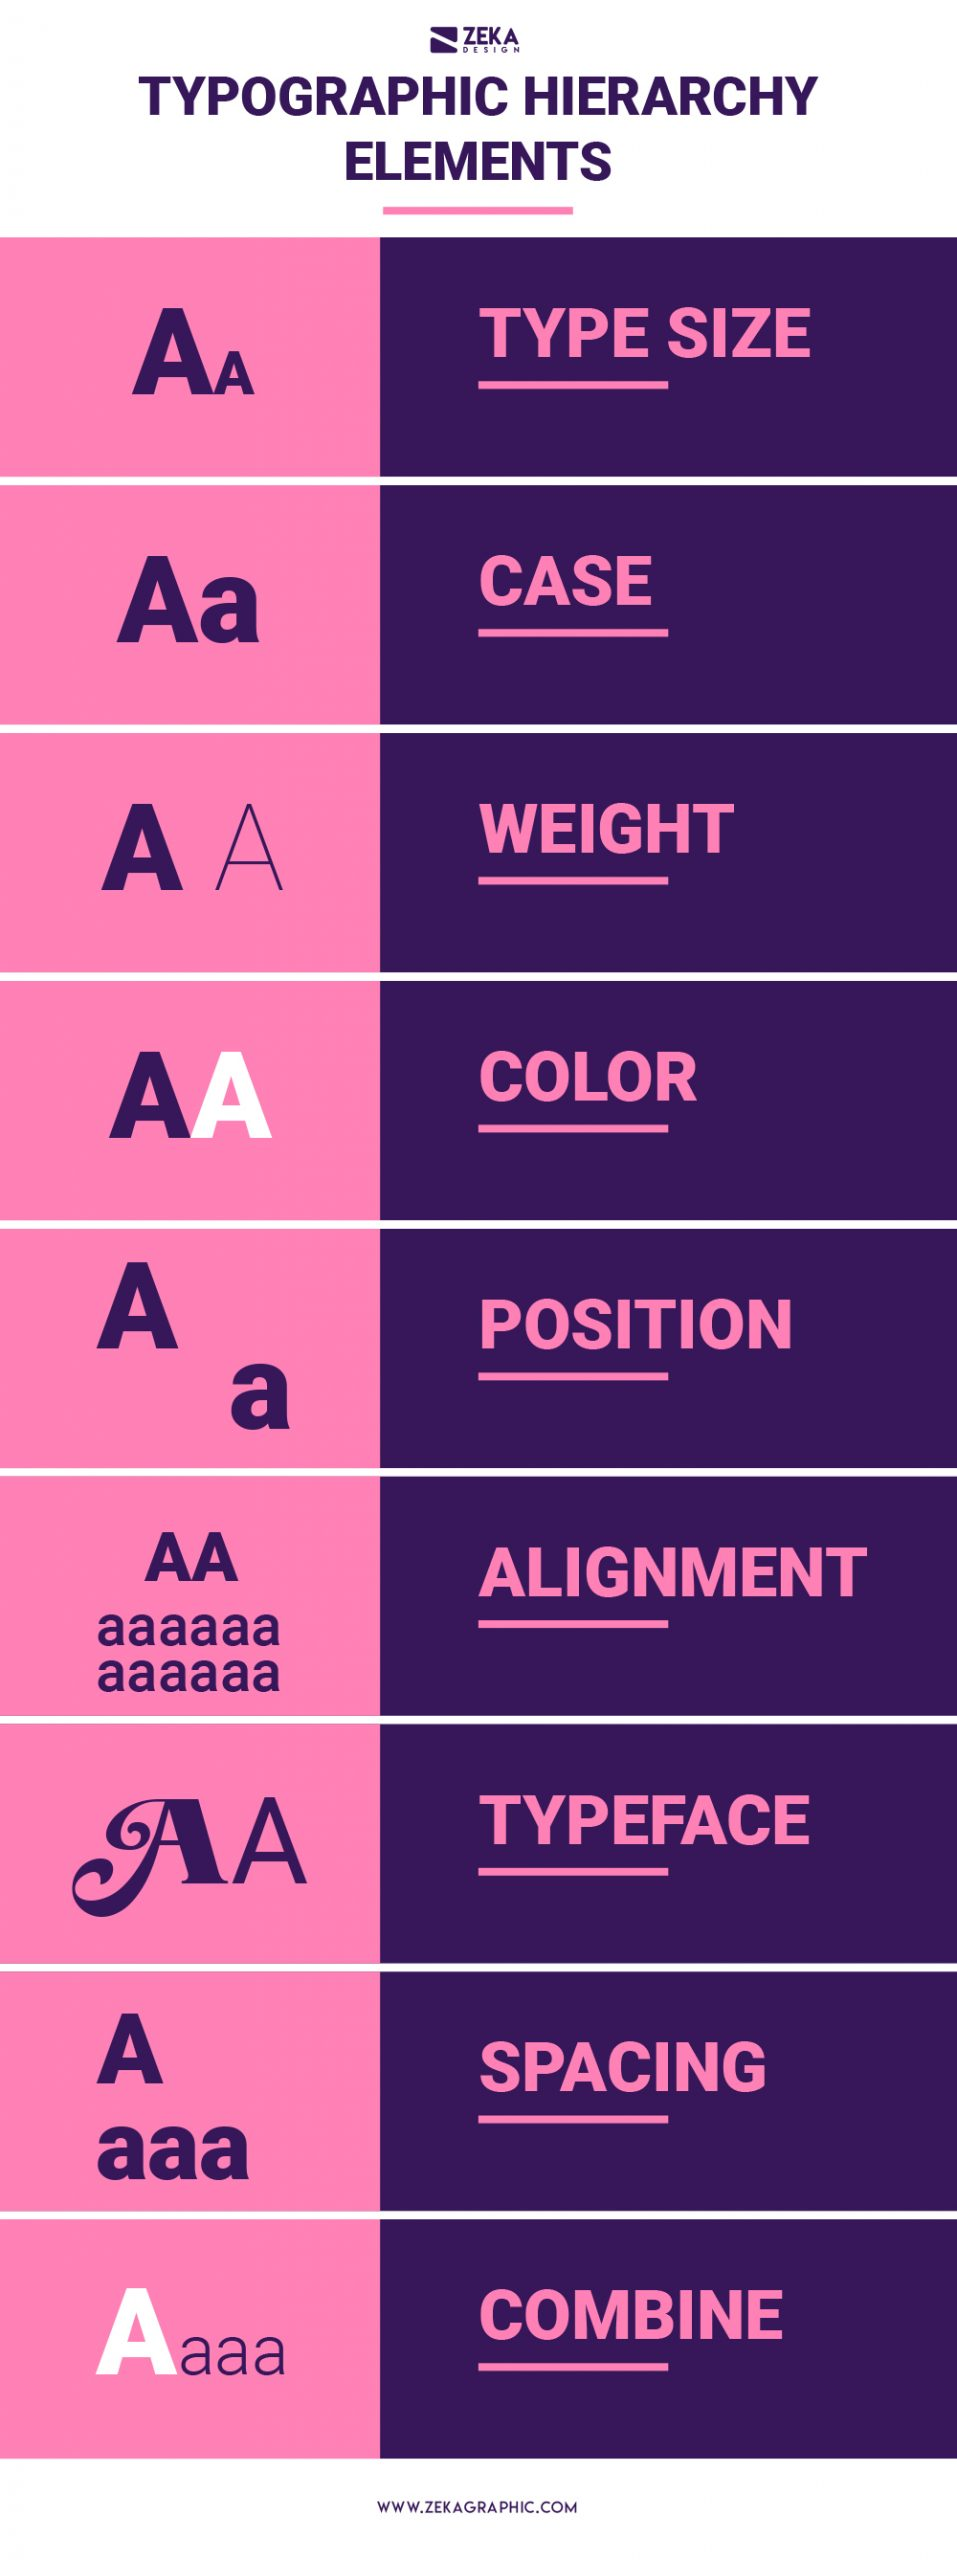 Typographic Hierarchy Elements in Graphic Design